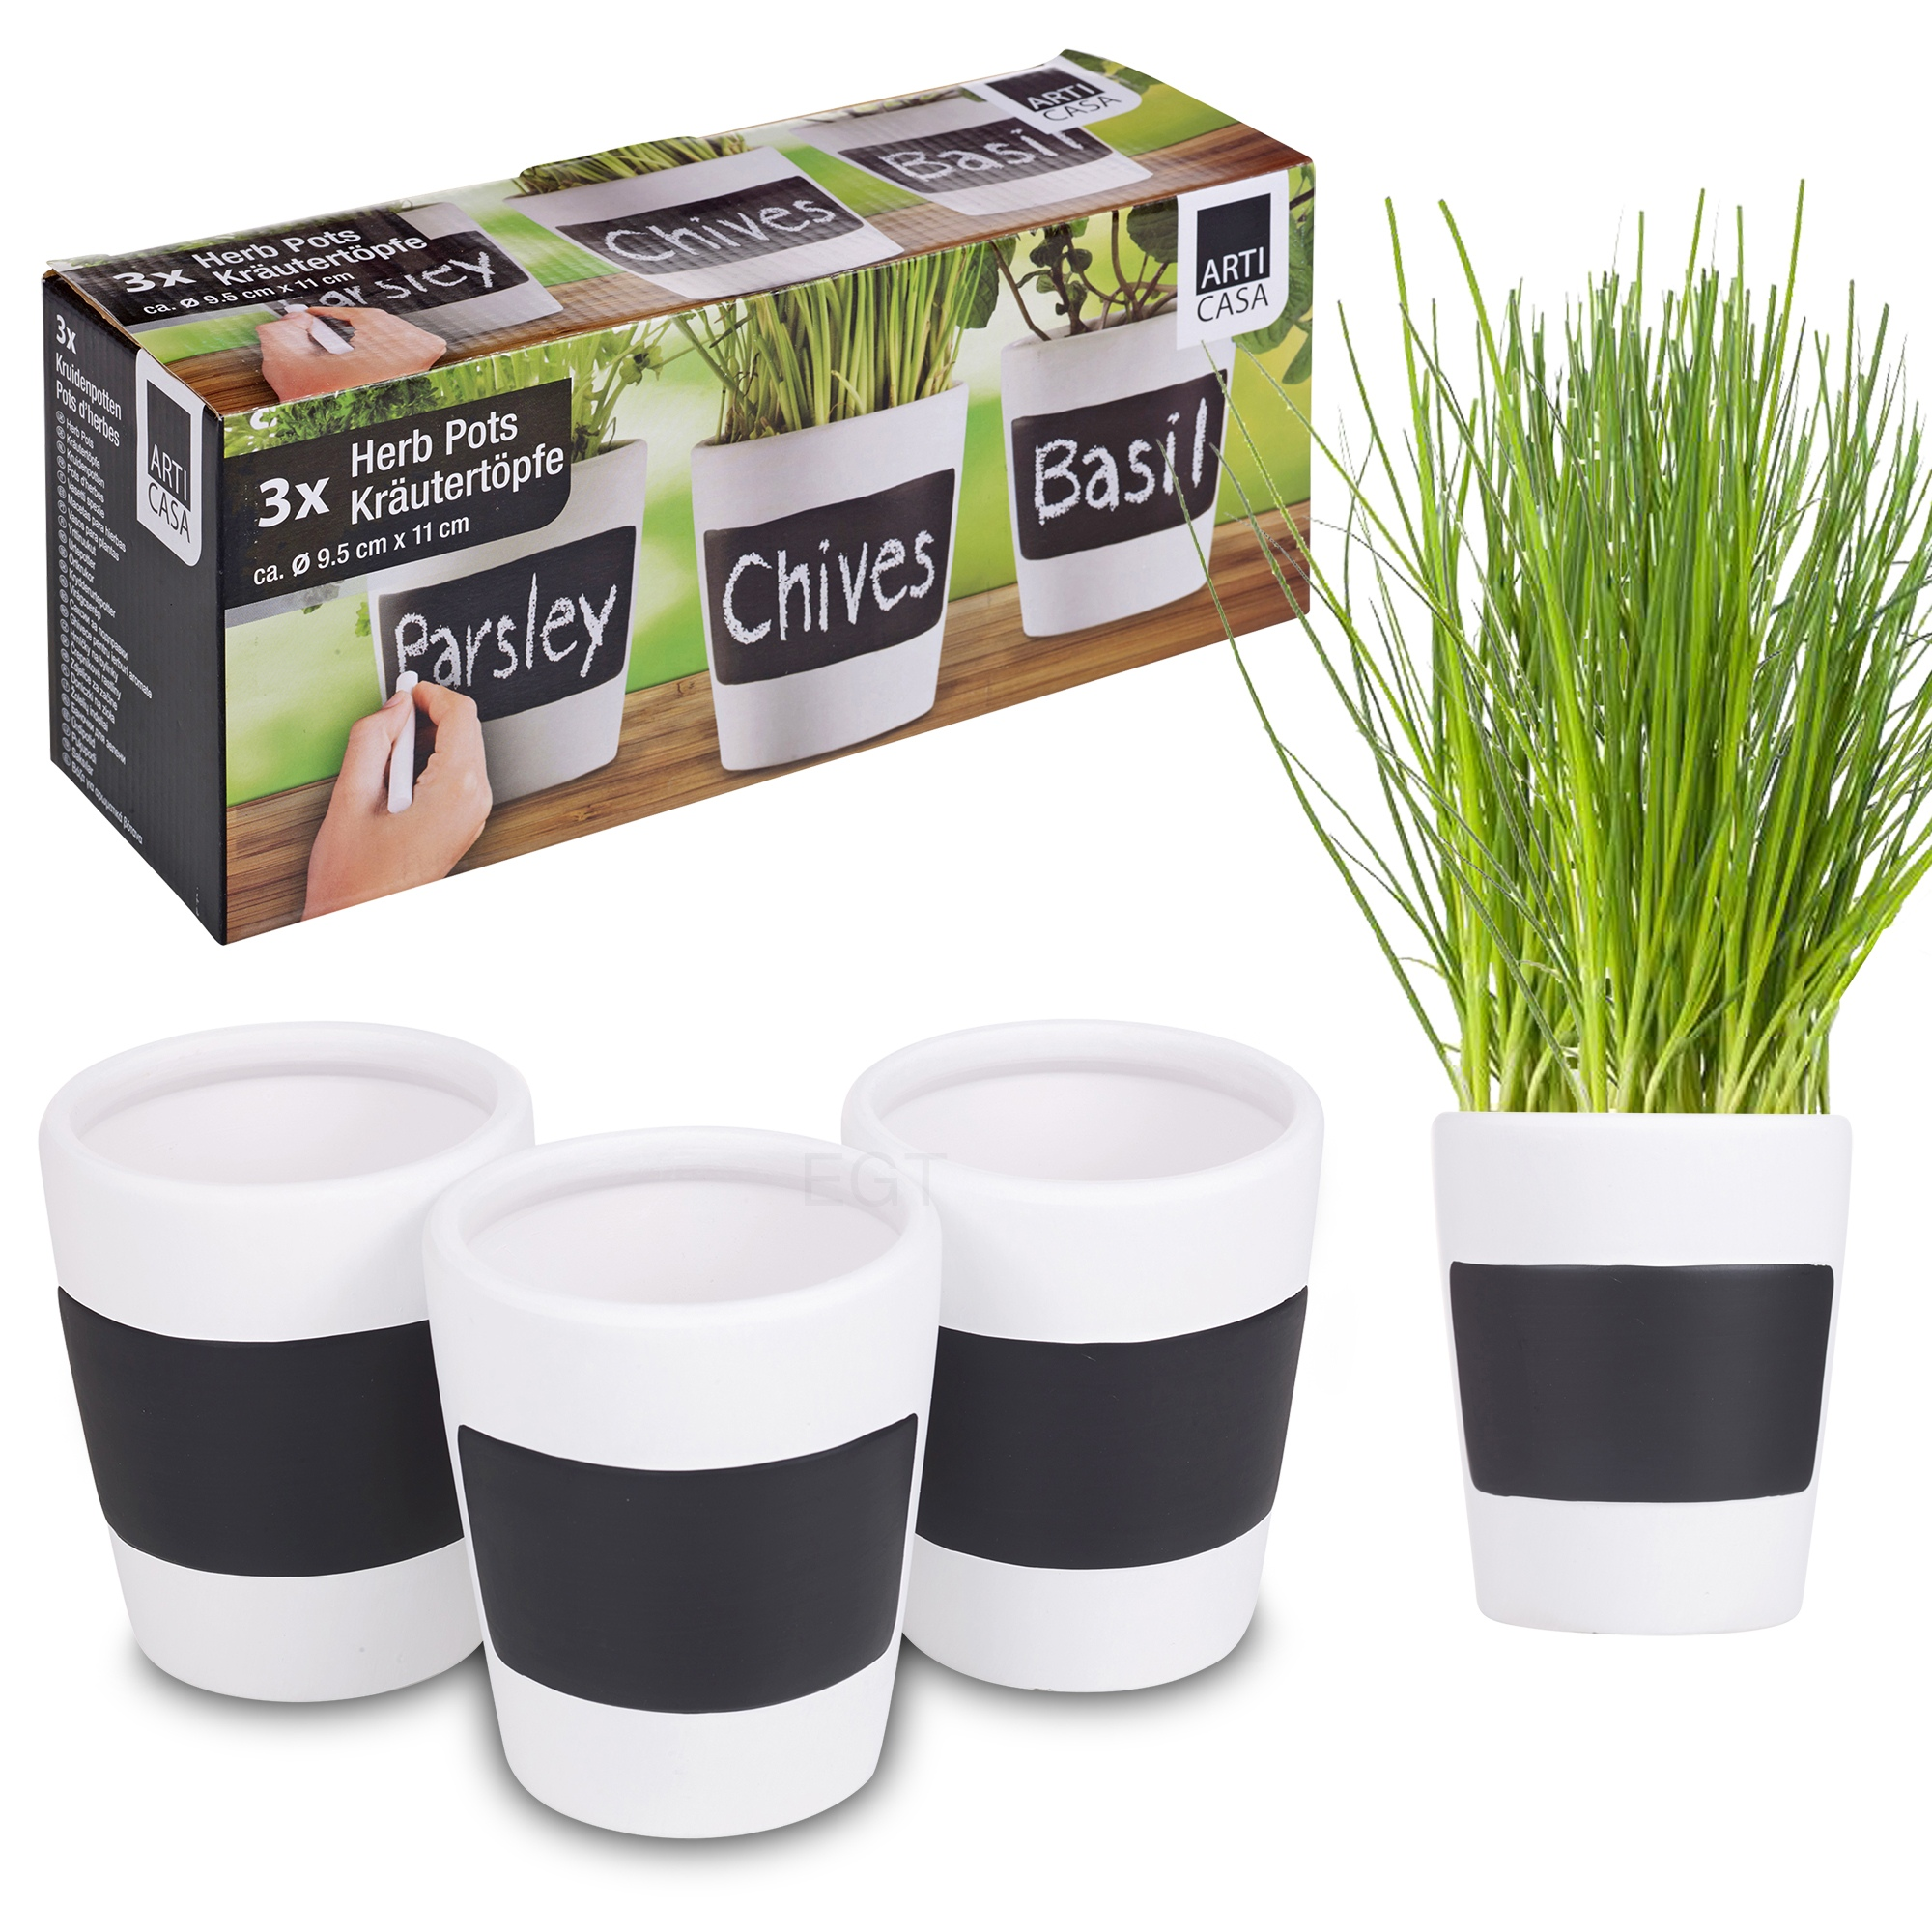 Kitchen Garden Planter 3 X Ceramic Herb Plant Pots Chalk Board Home Kitchen Garden